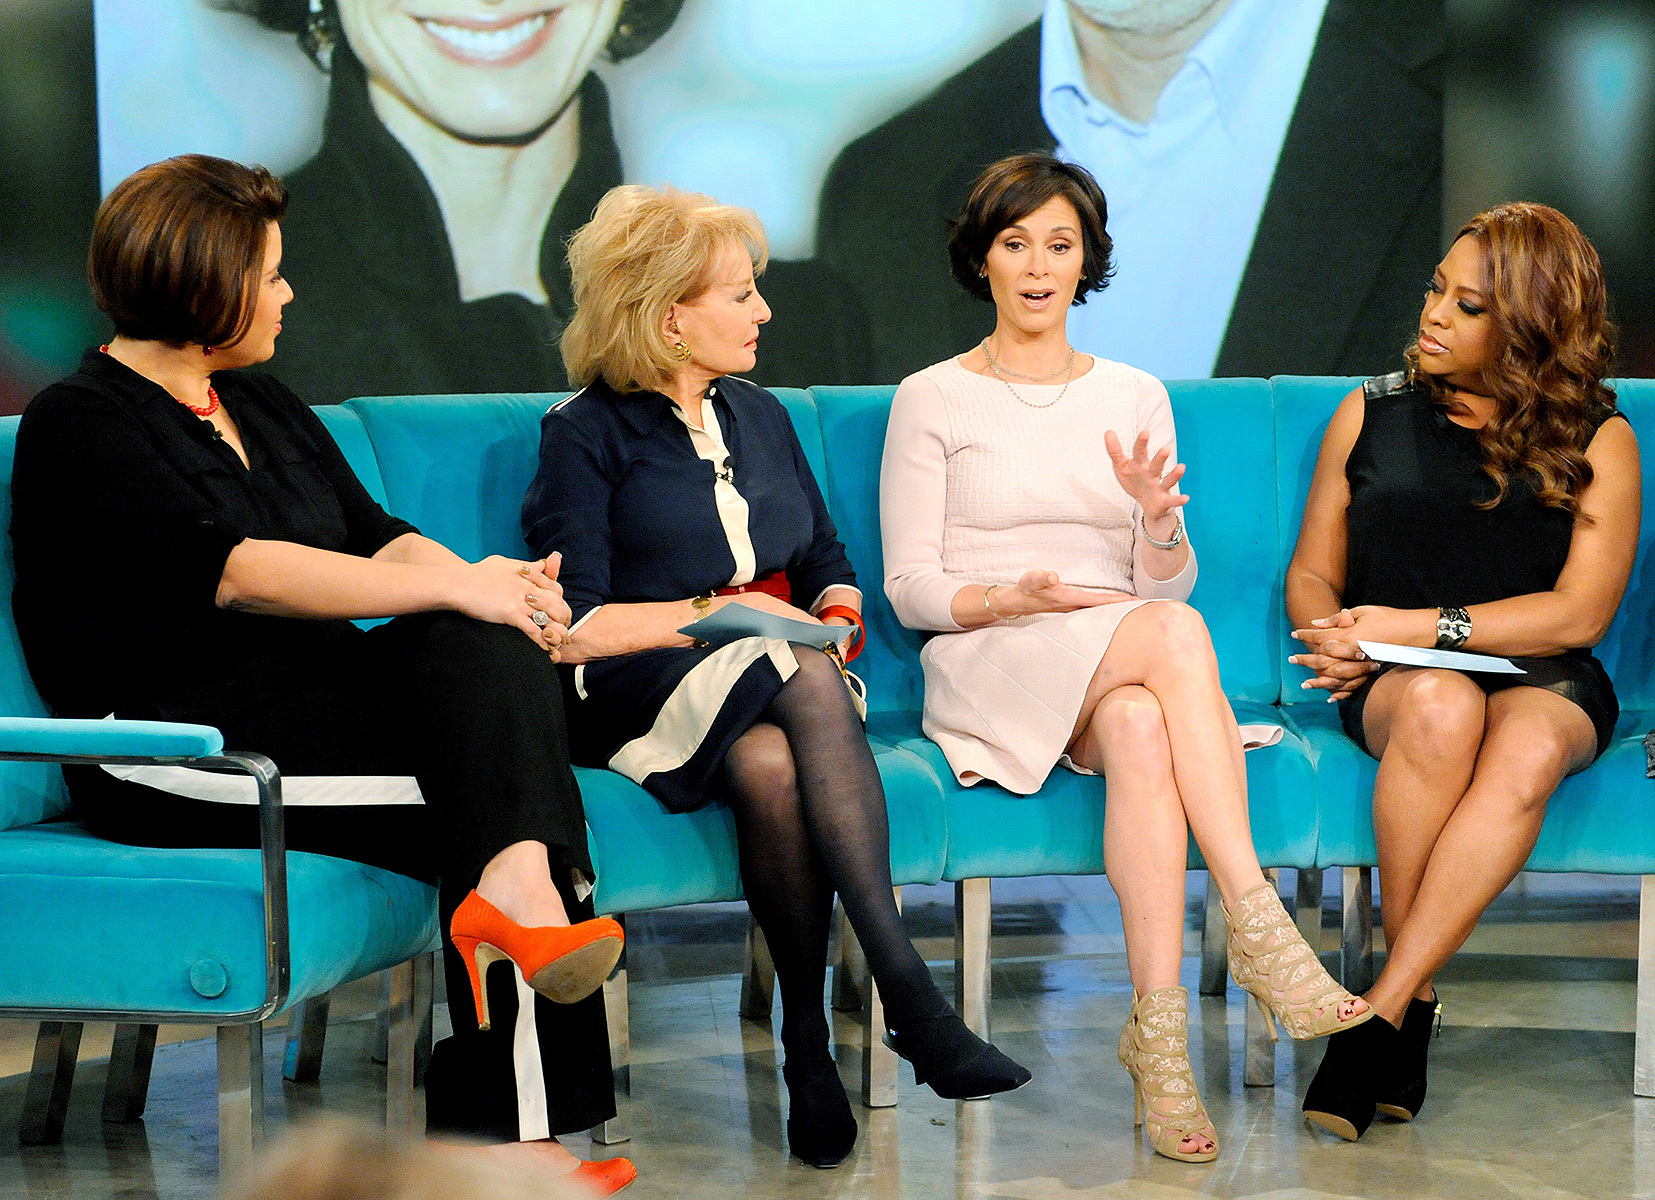 barbara walters elizabeth vargas the view alcoholic